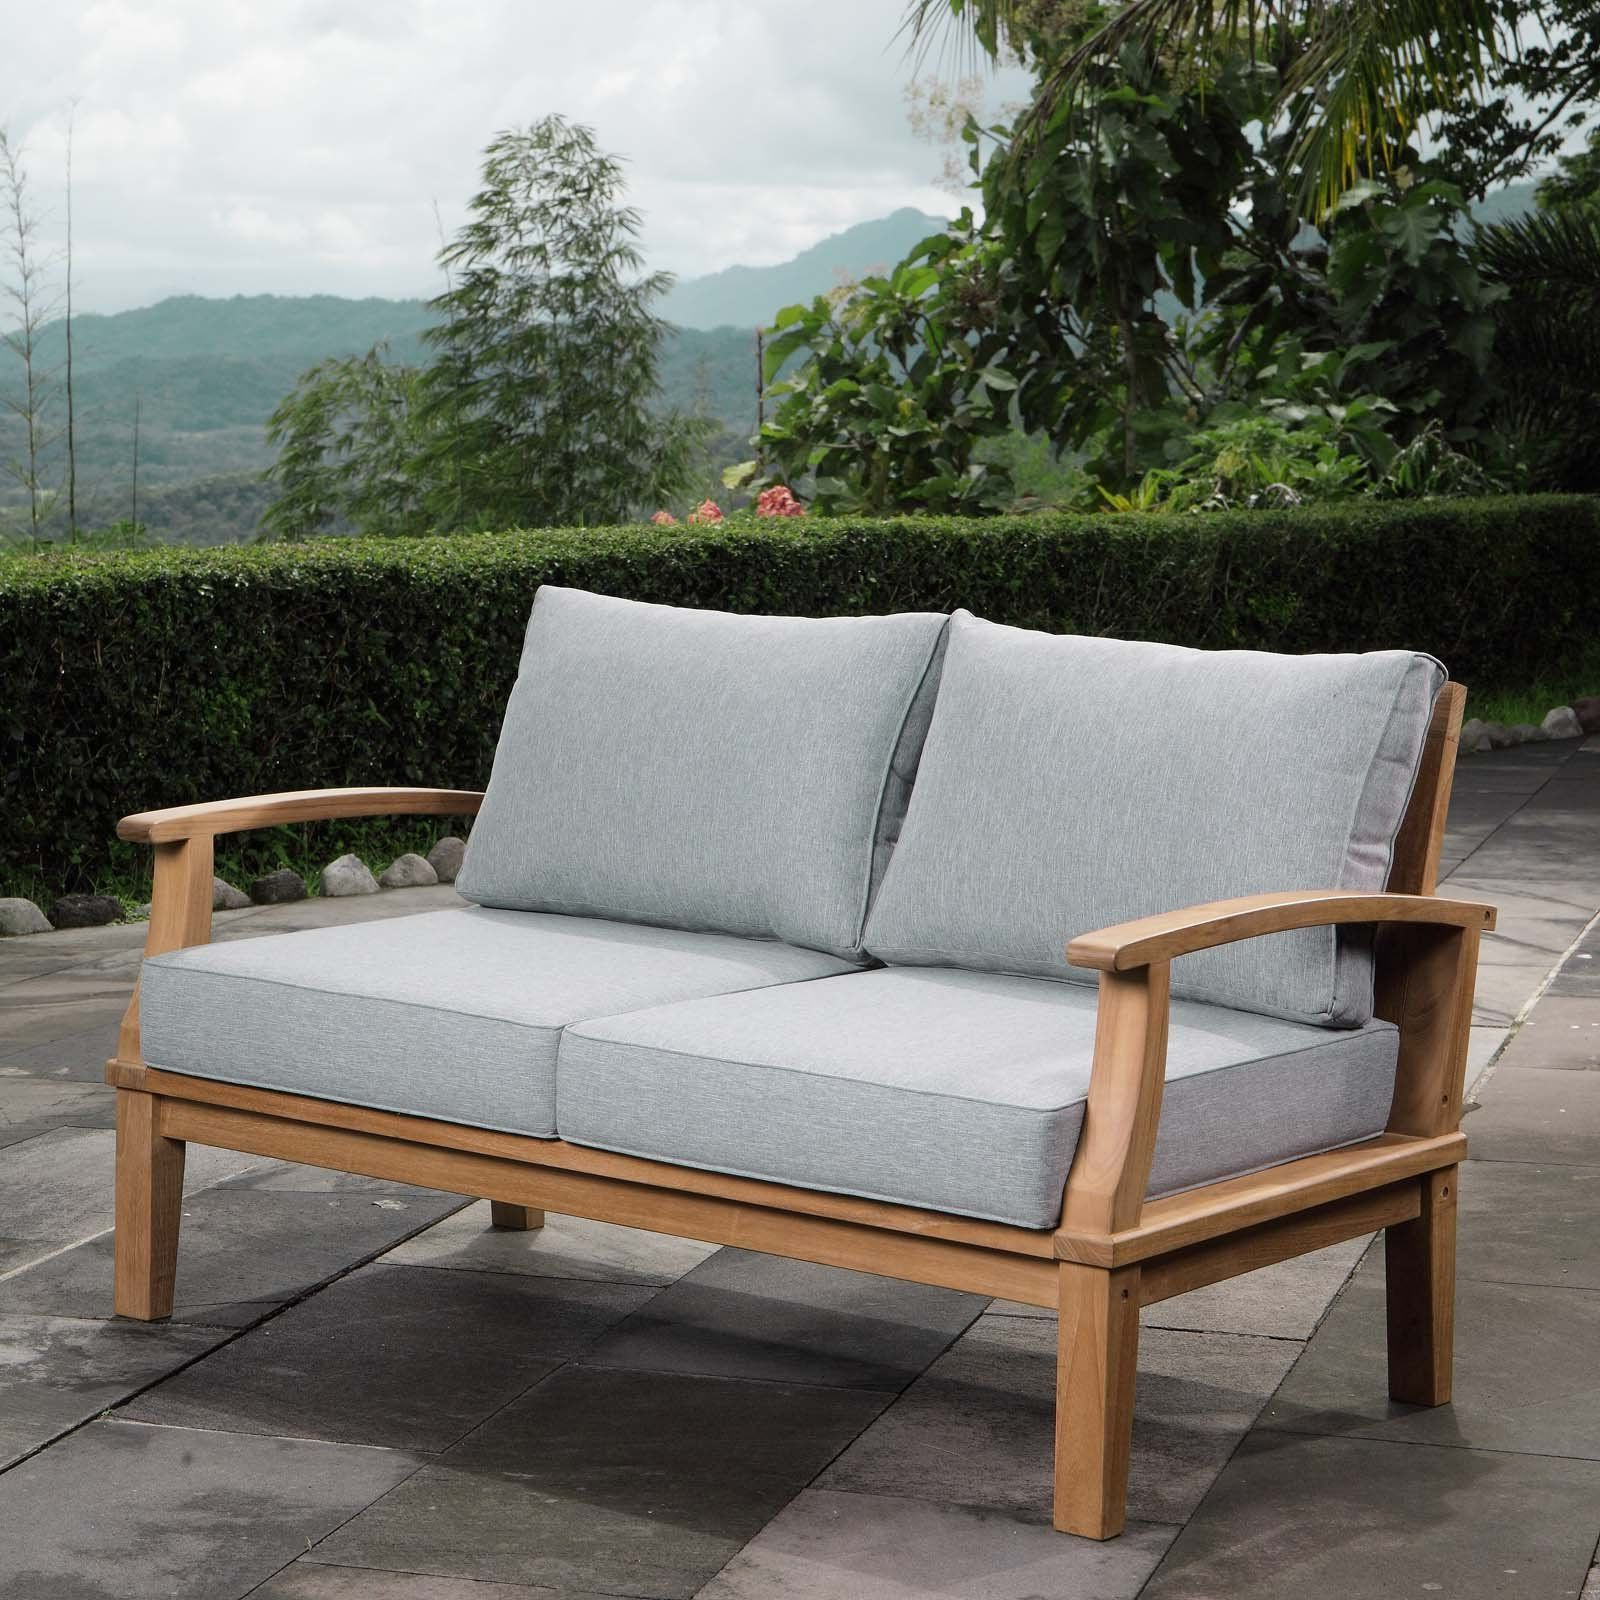 Most Recent Lyall Loveseats With Cushion Regarding Cosette Outdoor Patio Teak Loveseat Wl 00127 Mw In (View 13 of 20)